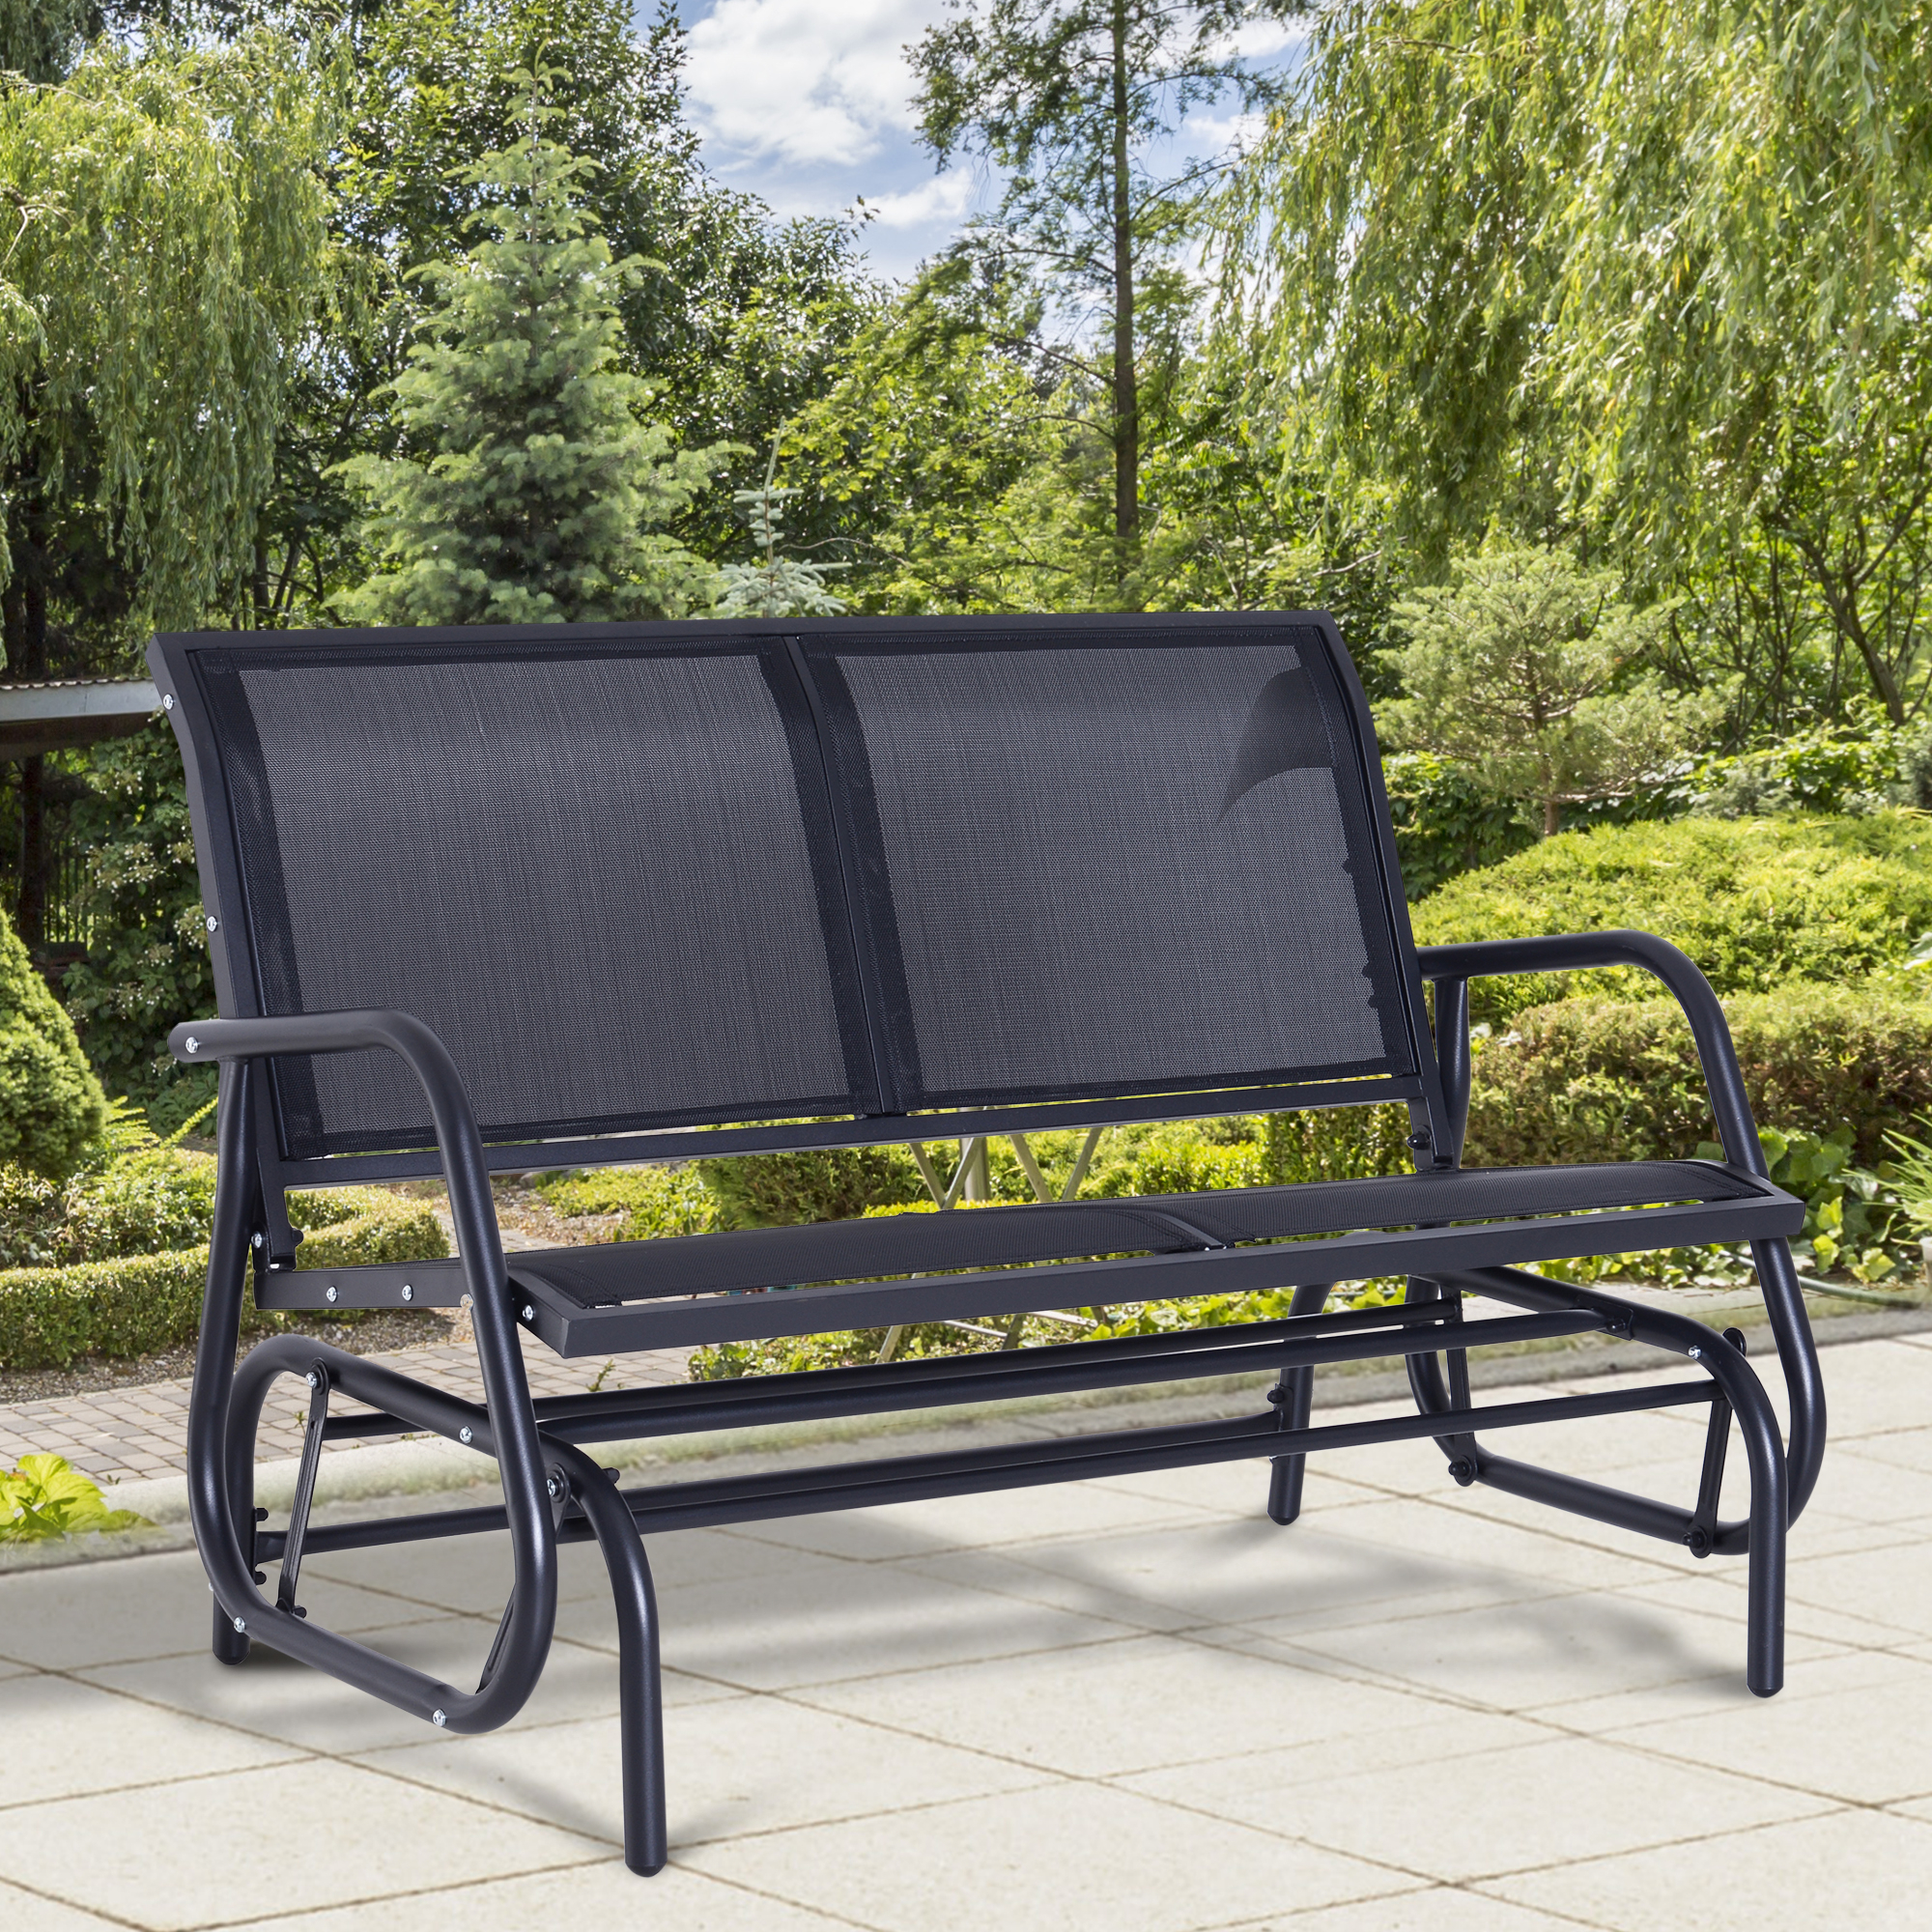 Details About Outsunny Patio Double 2 Person Glider Bench Rocker Porch Love Seat Swing Chair Inside 2 Person Loveseat Chair Patio Porch Swings With Rocker (View 5 of 25)